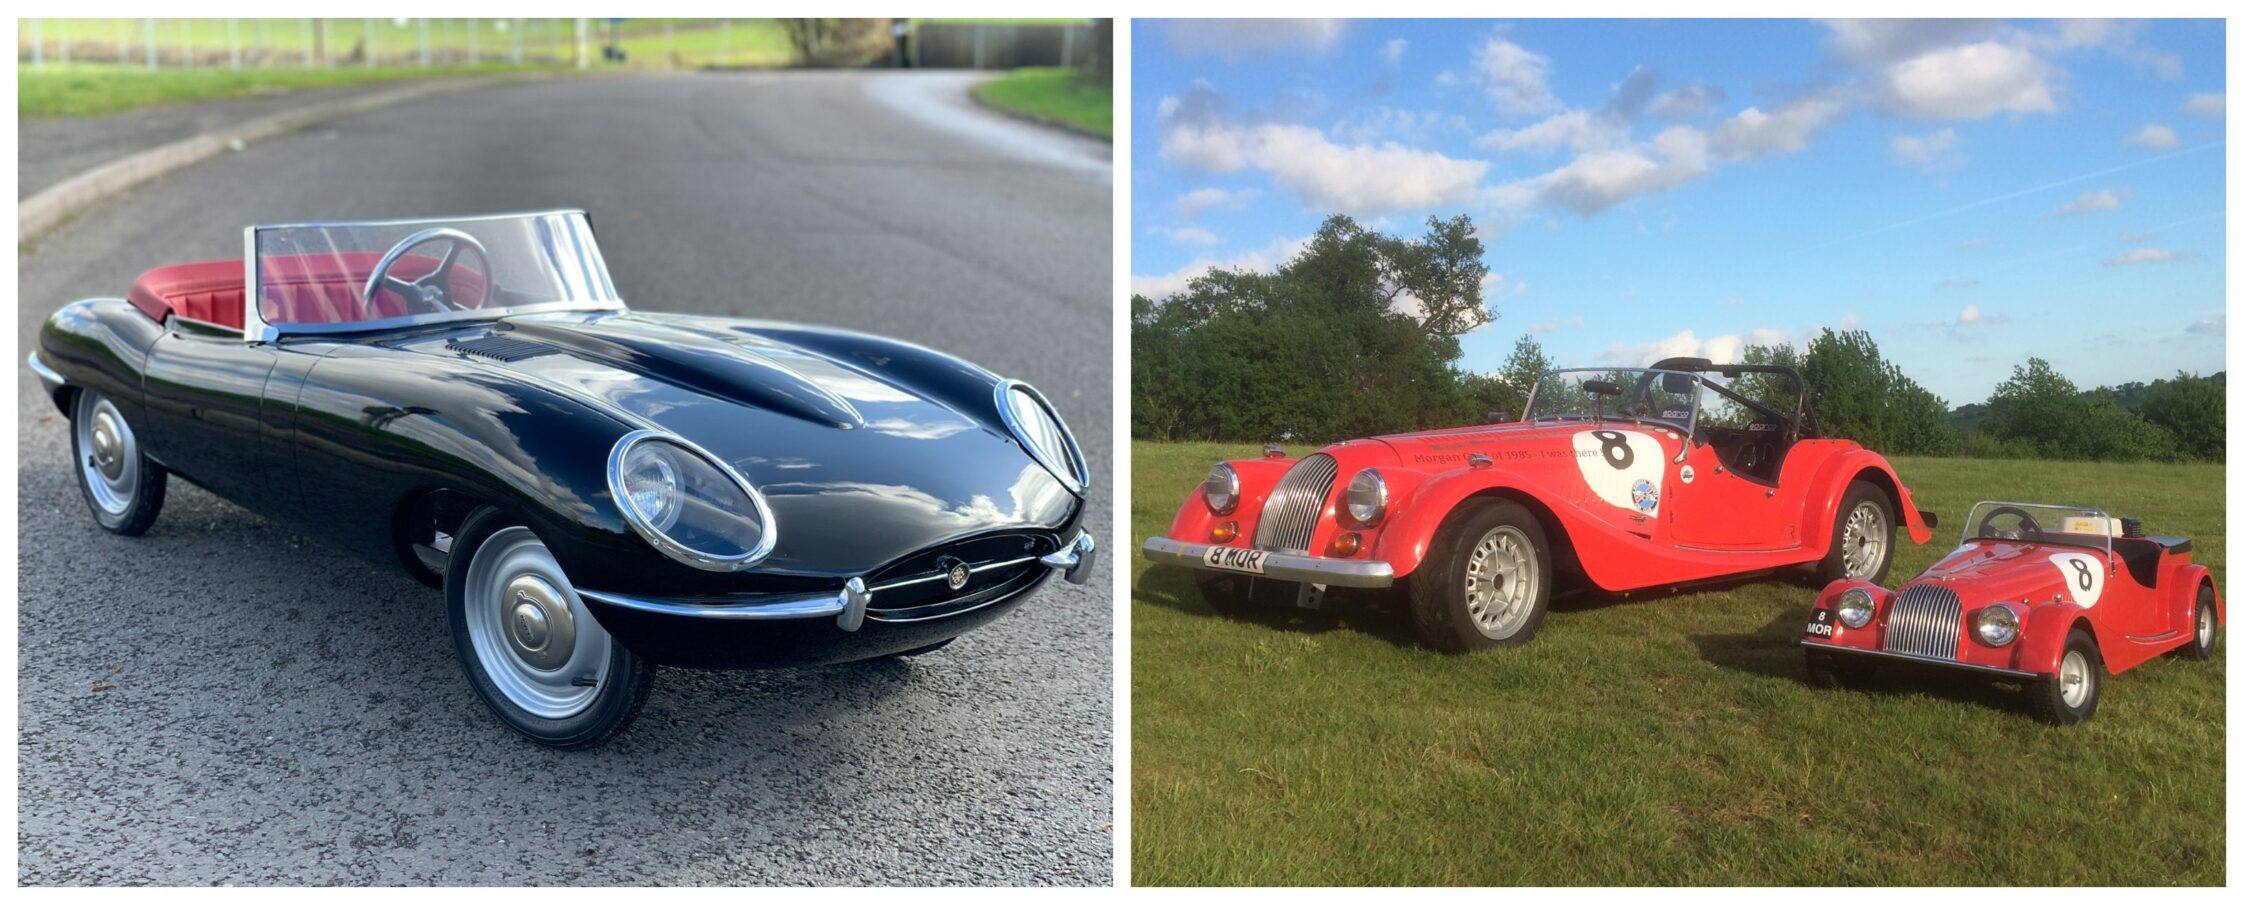 Concours of Elegance Launches 'The Junior Concours'